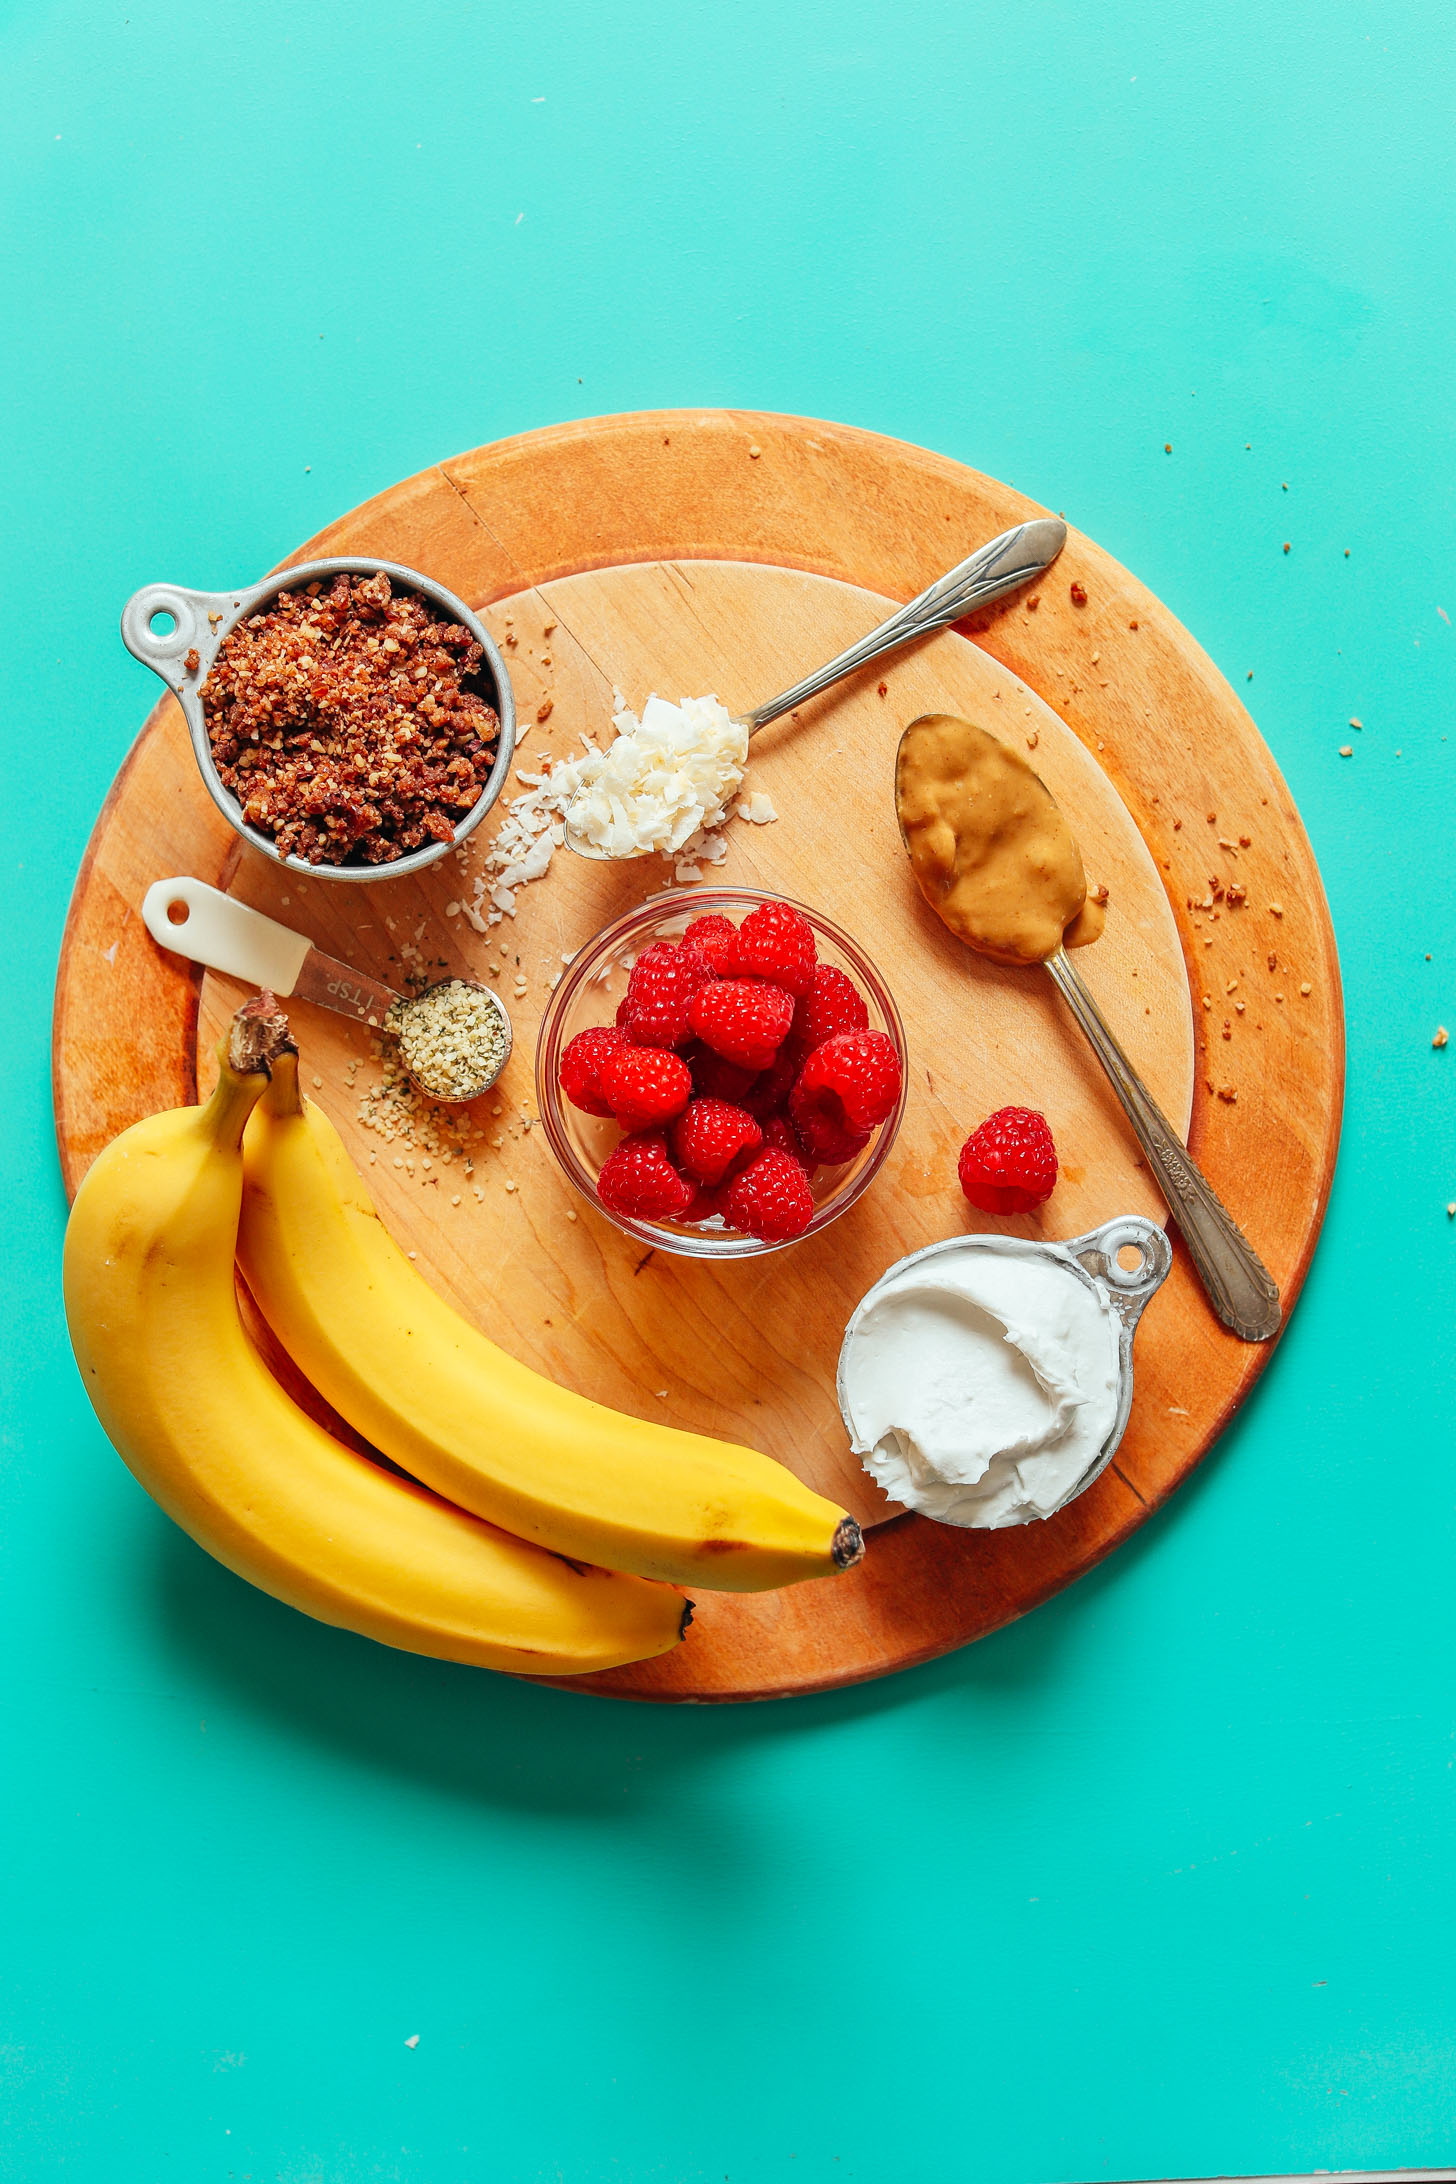 Display of ingredients for Raw Banana Splits including bananas, raspberries, coconut yogurt, flaked coconut, peanut butter, and rawnola